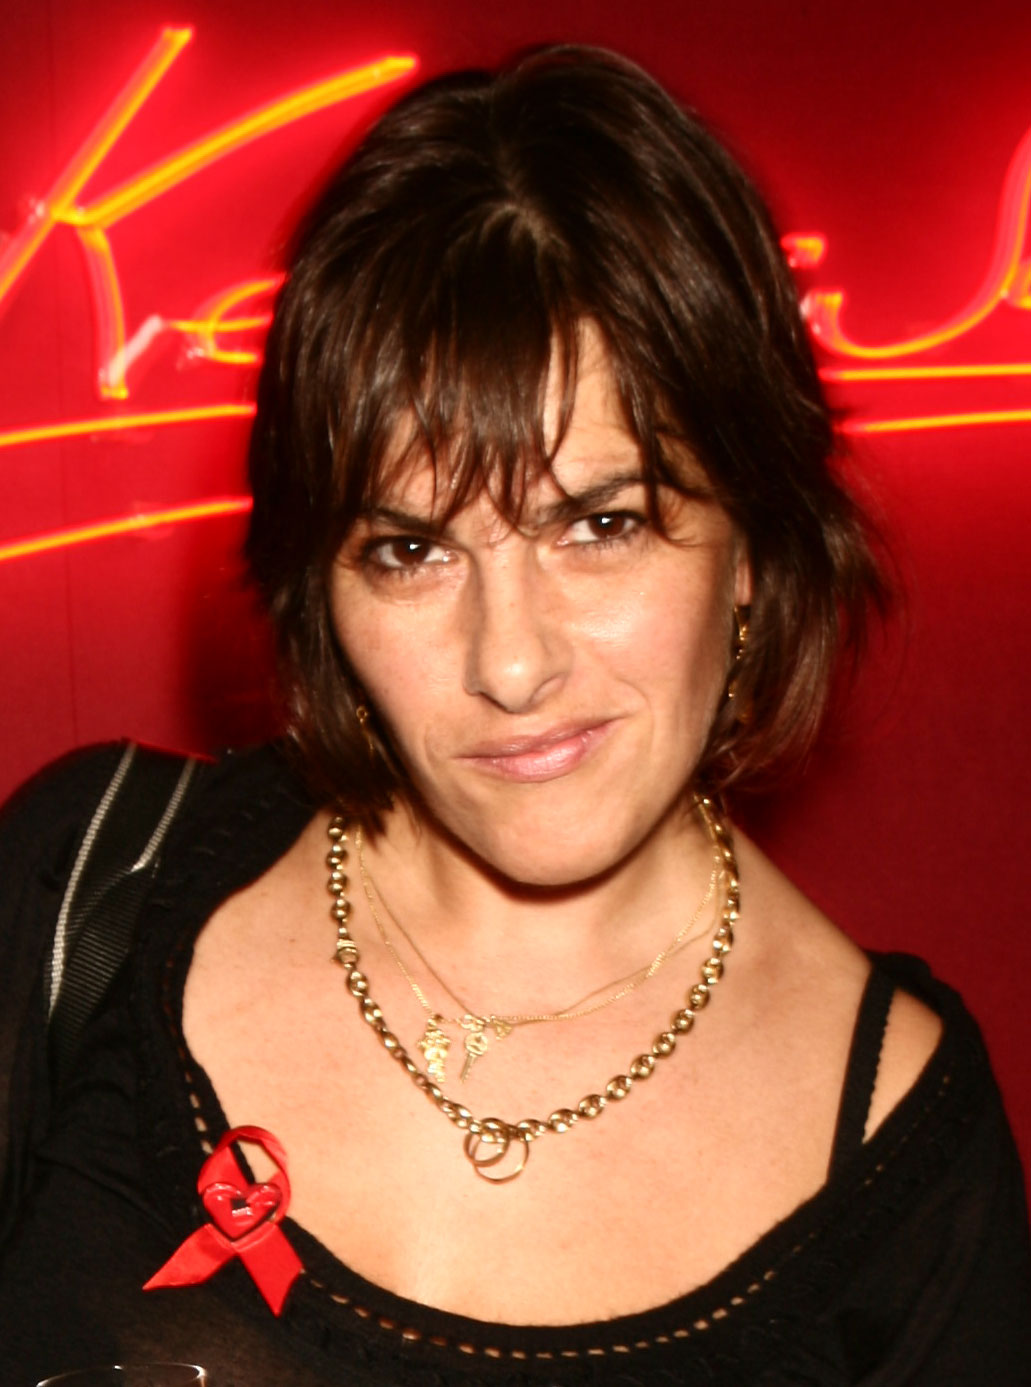 tracey emin Official website of tracey emin tracey emin stone love lehmann maupin, new york 5th may - 8th june 2016 more information.